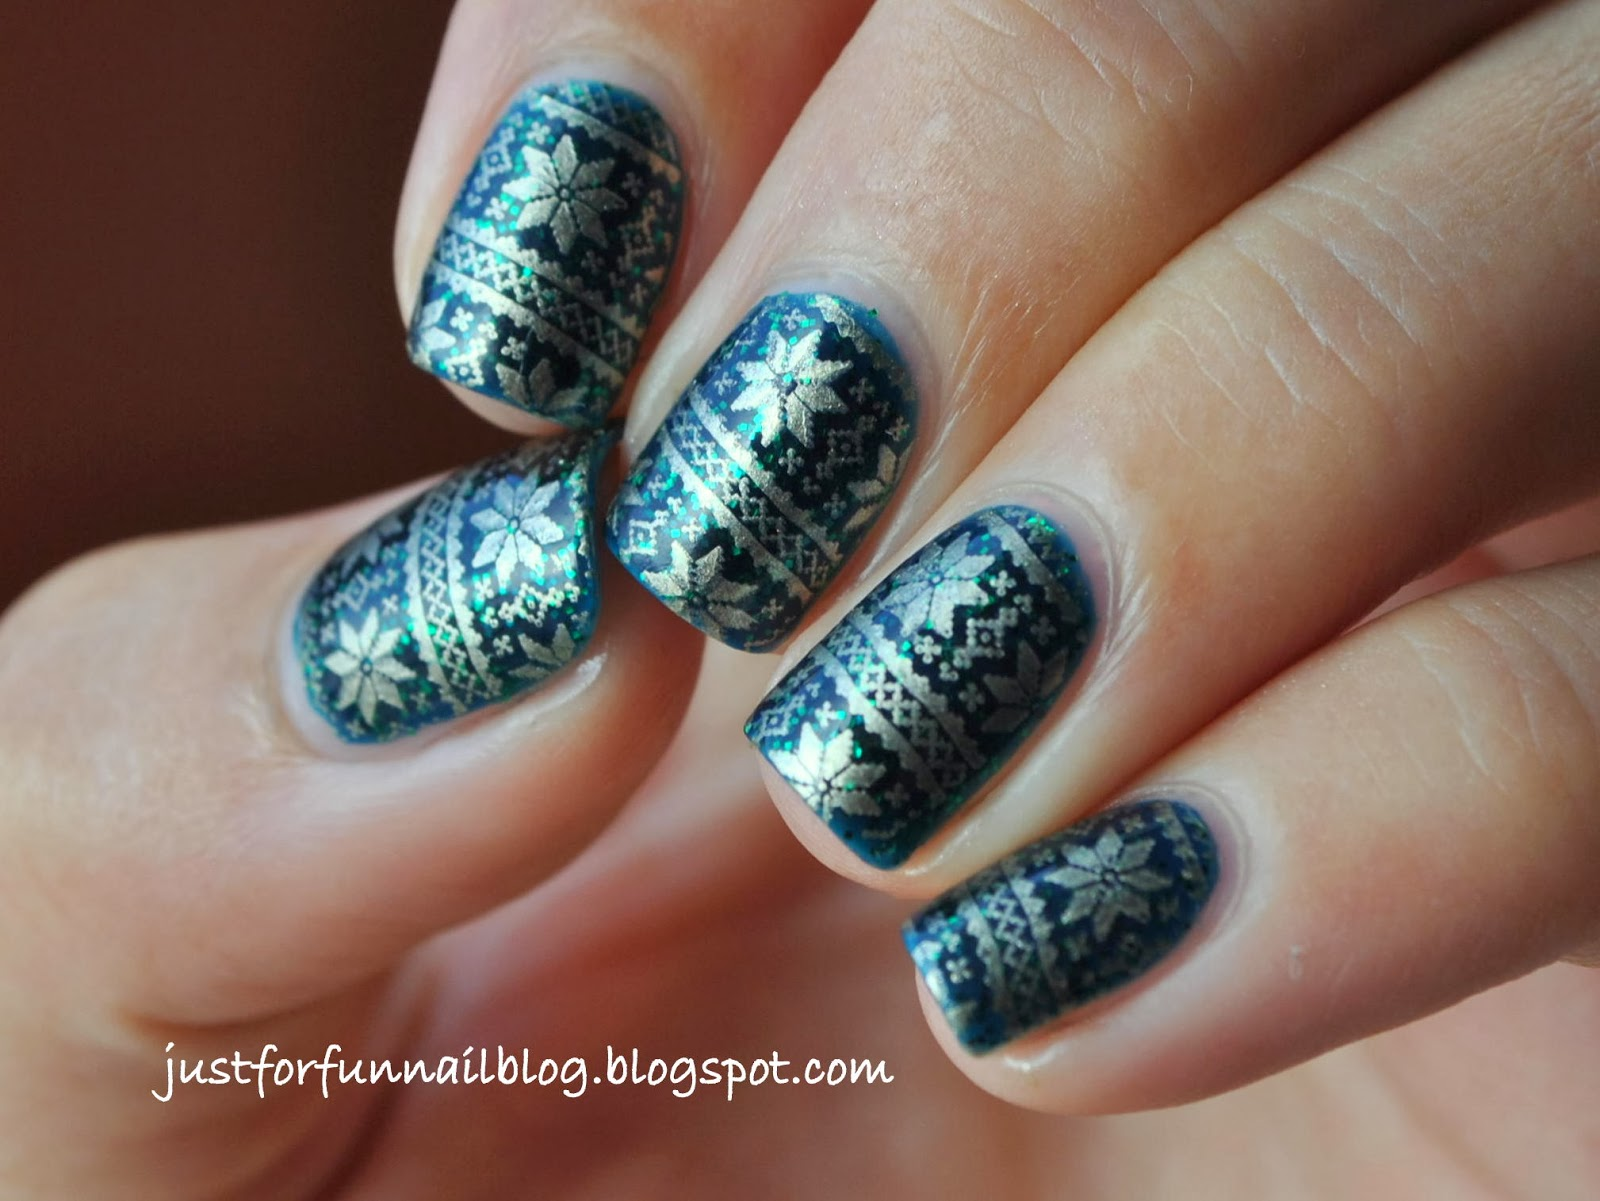 Just For Fun: My first Christmas Nail Design for 2013!